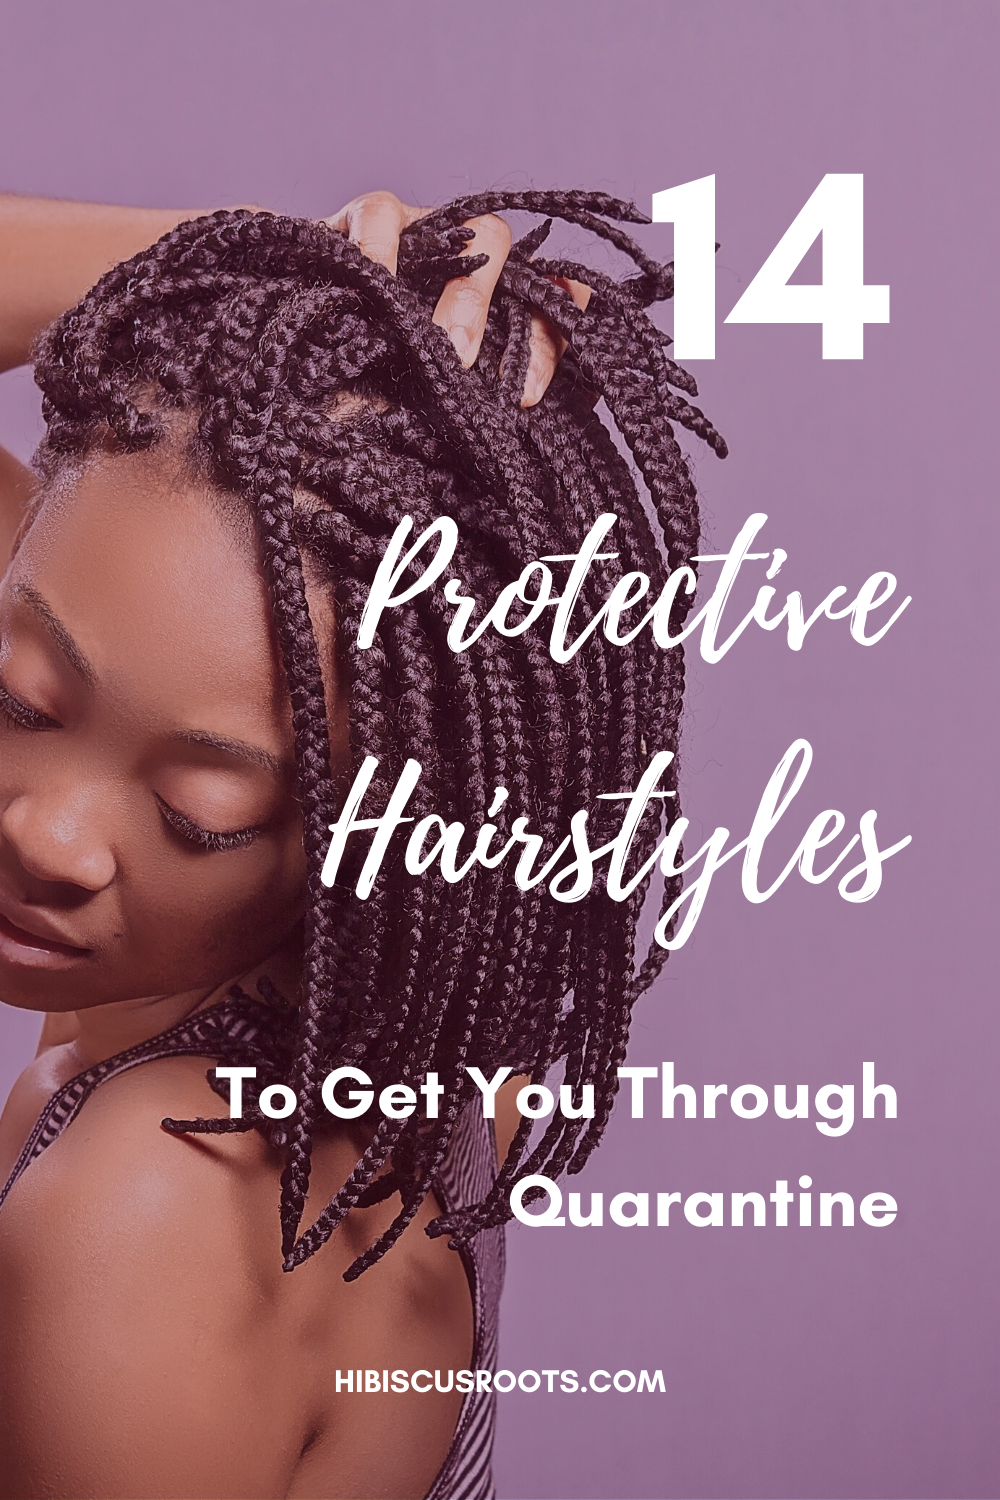 Easy Protective Hairstyles You Can Do At Home In 2020 Natural Hair Styles Hair Styles Protective Hairstyles